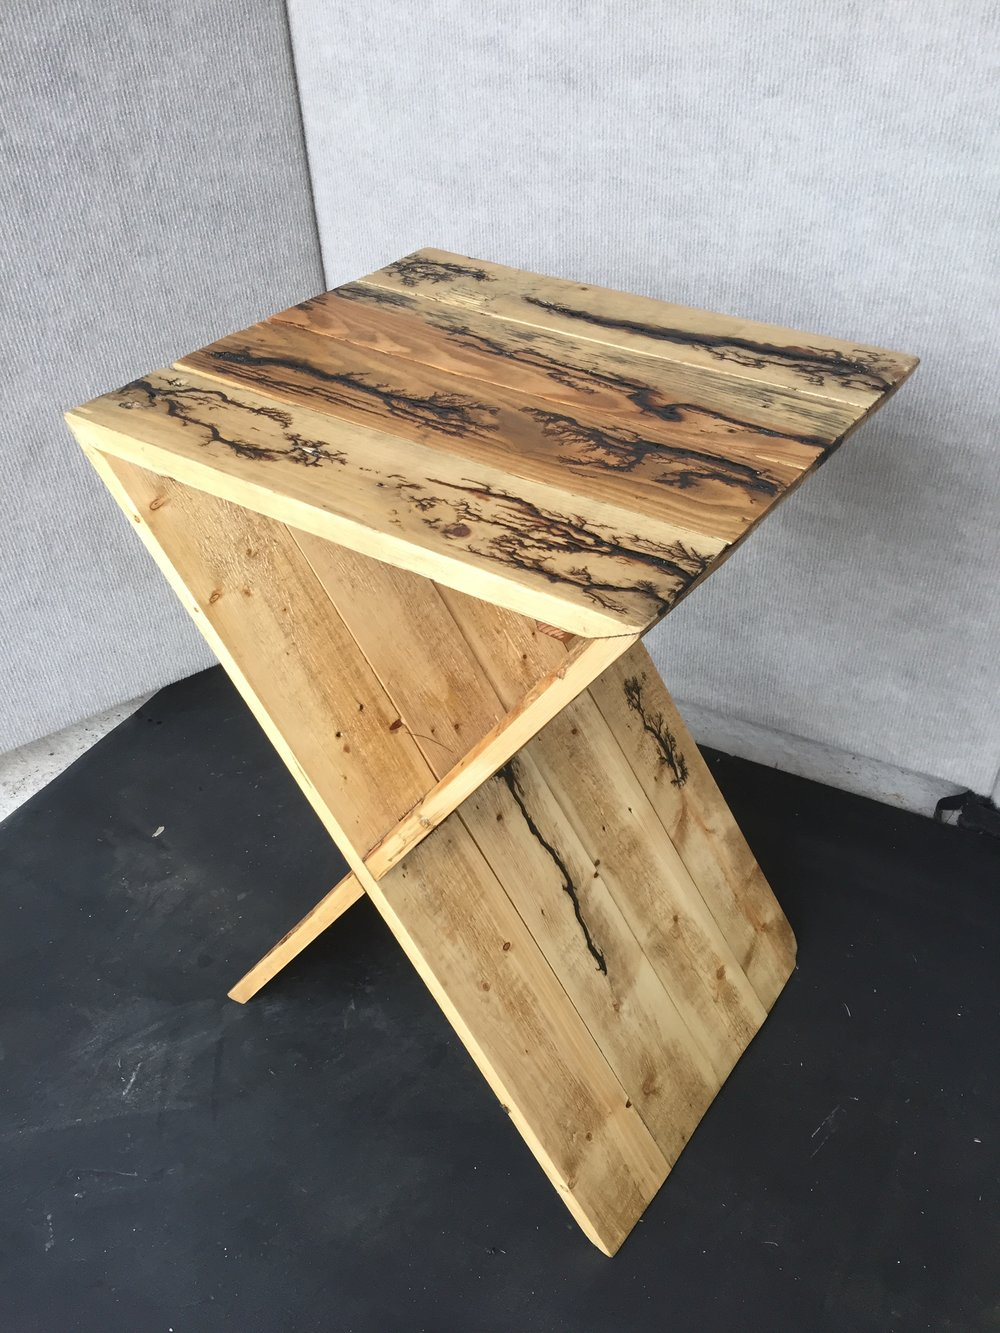 Pallet wood side table with elctro burning.